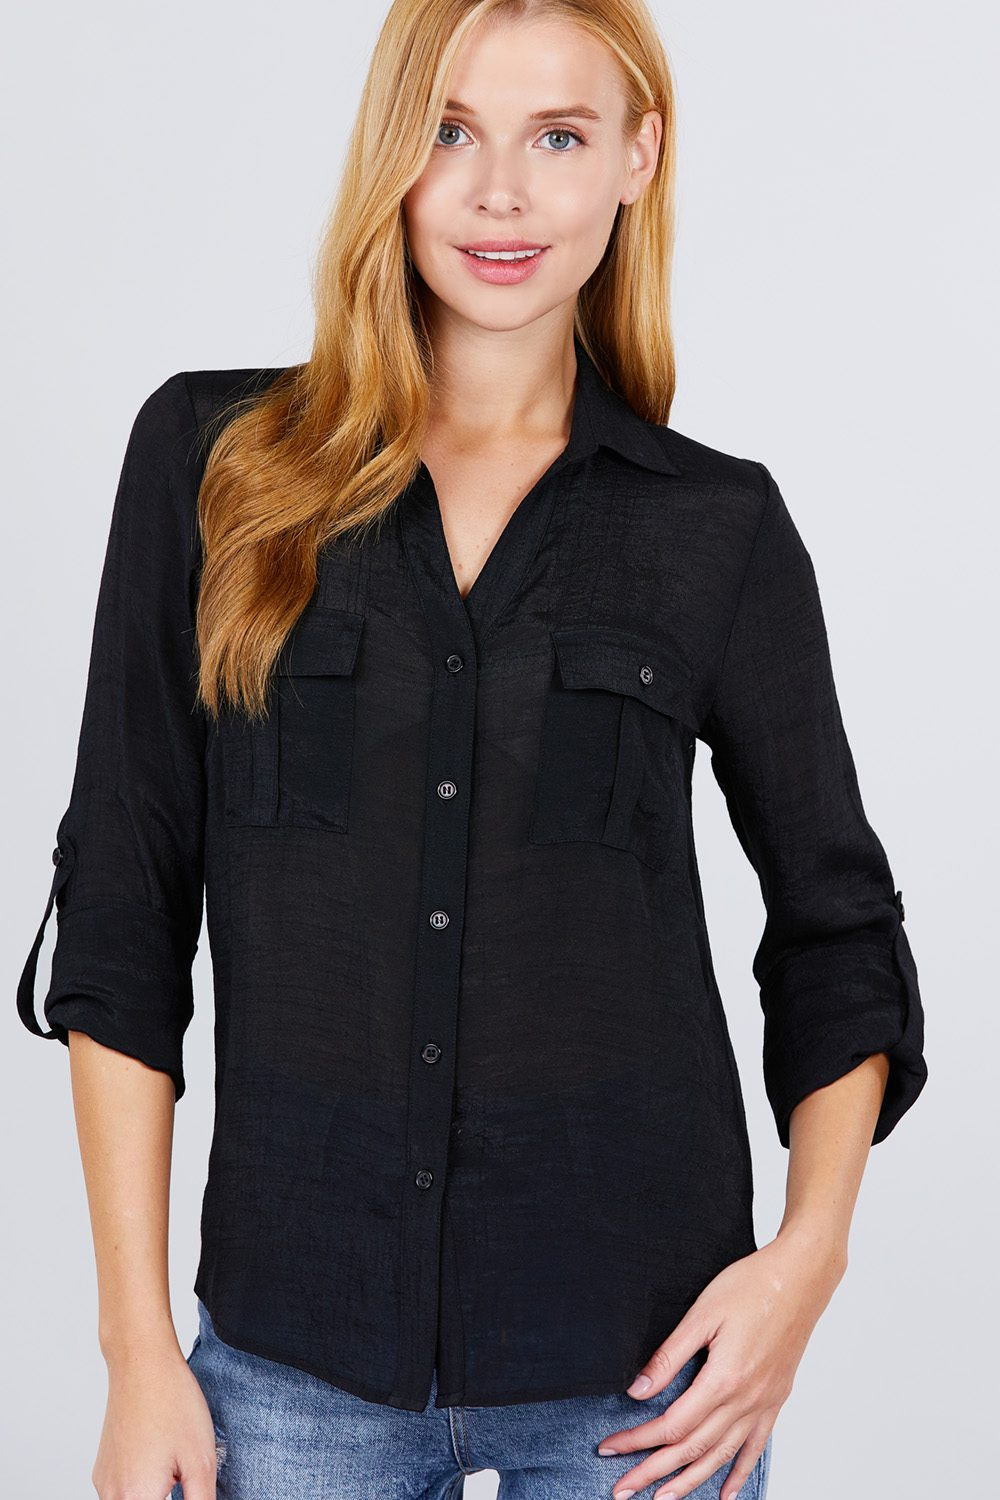 Roll 'Em Up Woven Shirt In Black